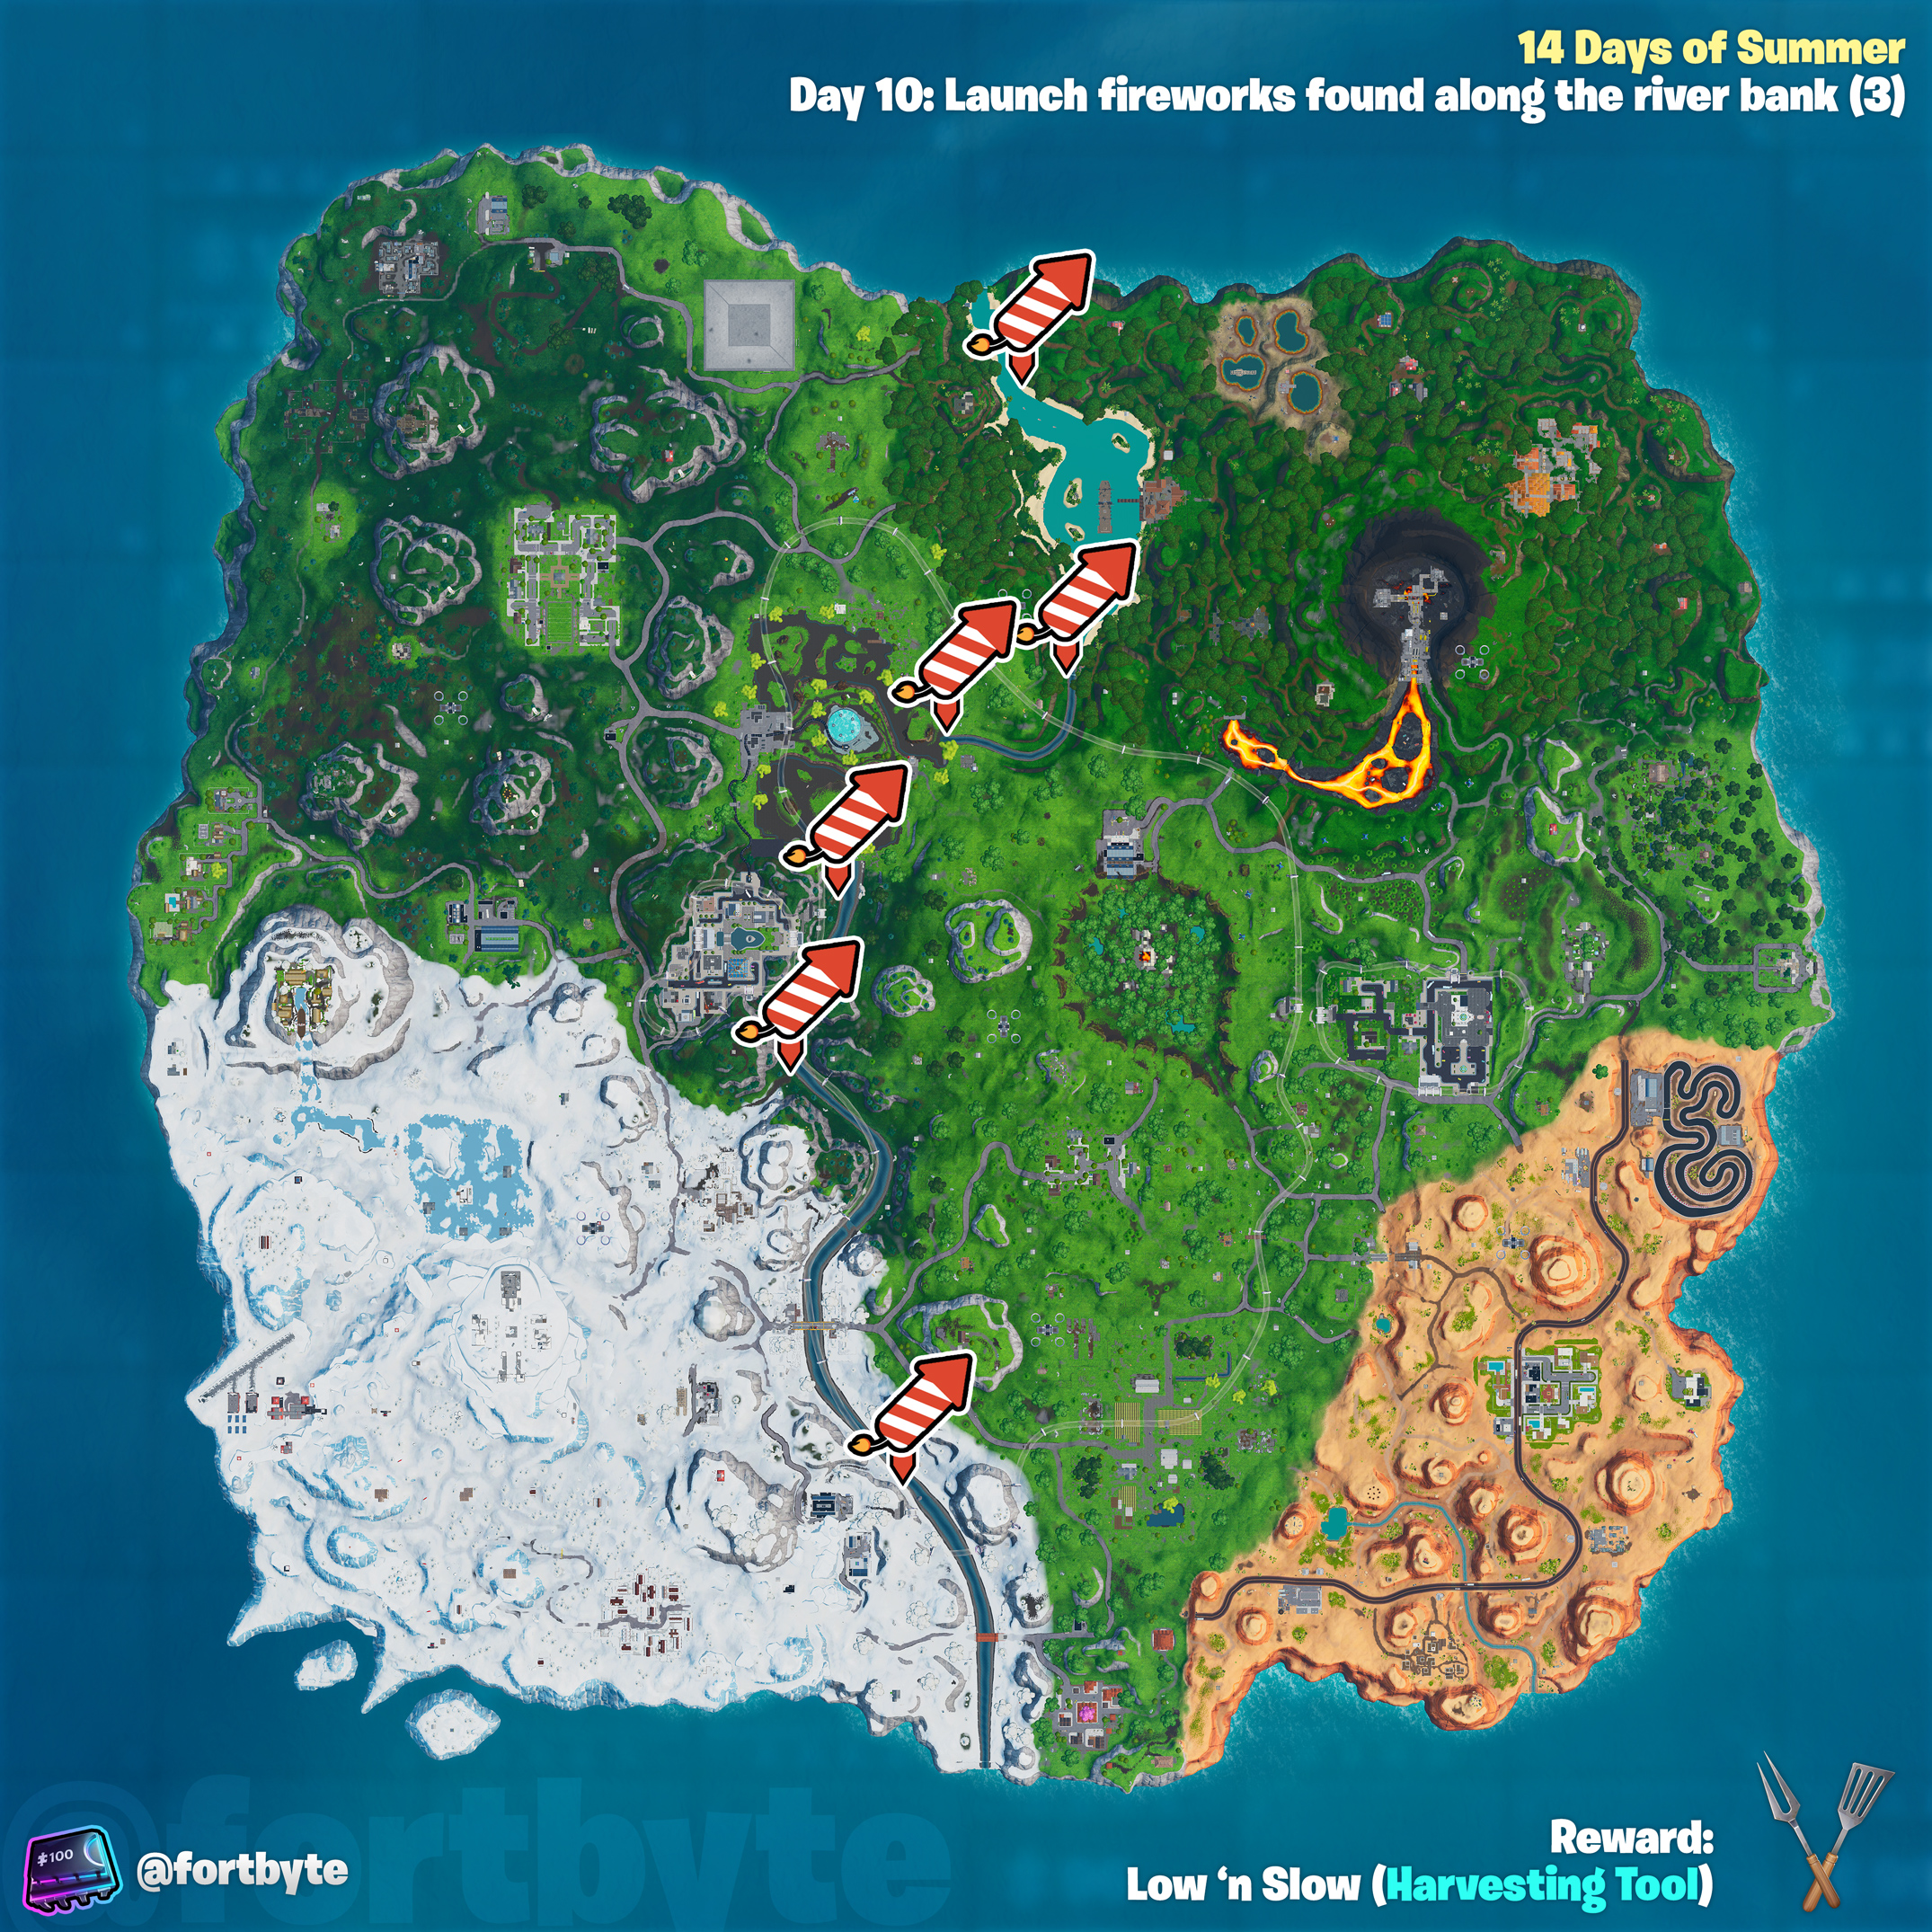 , Fortnite 14 Days of Summer – Launch fireworks found along the river bank location guide, AllYourGames.com, AllYourGames.com